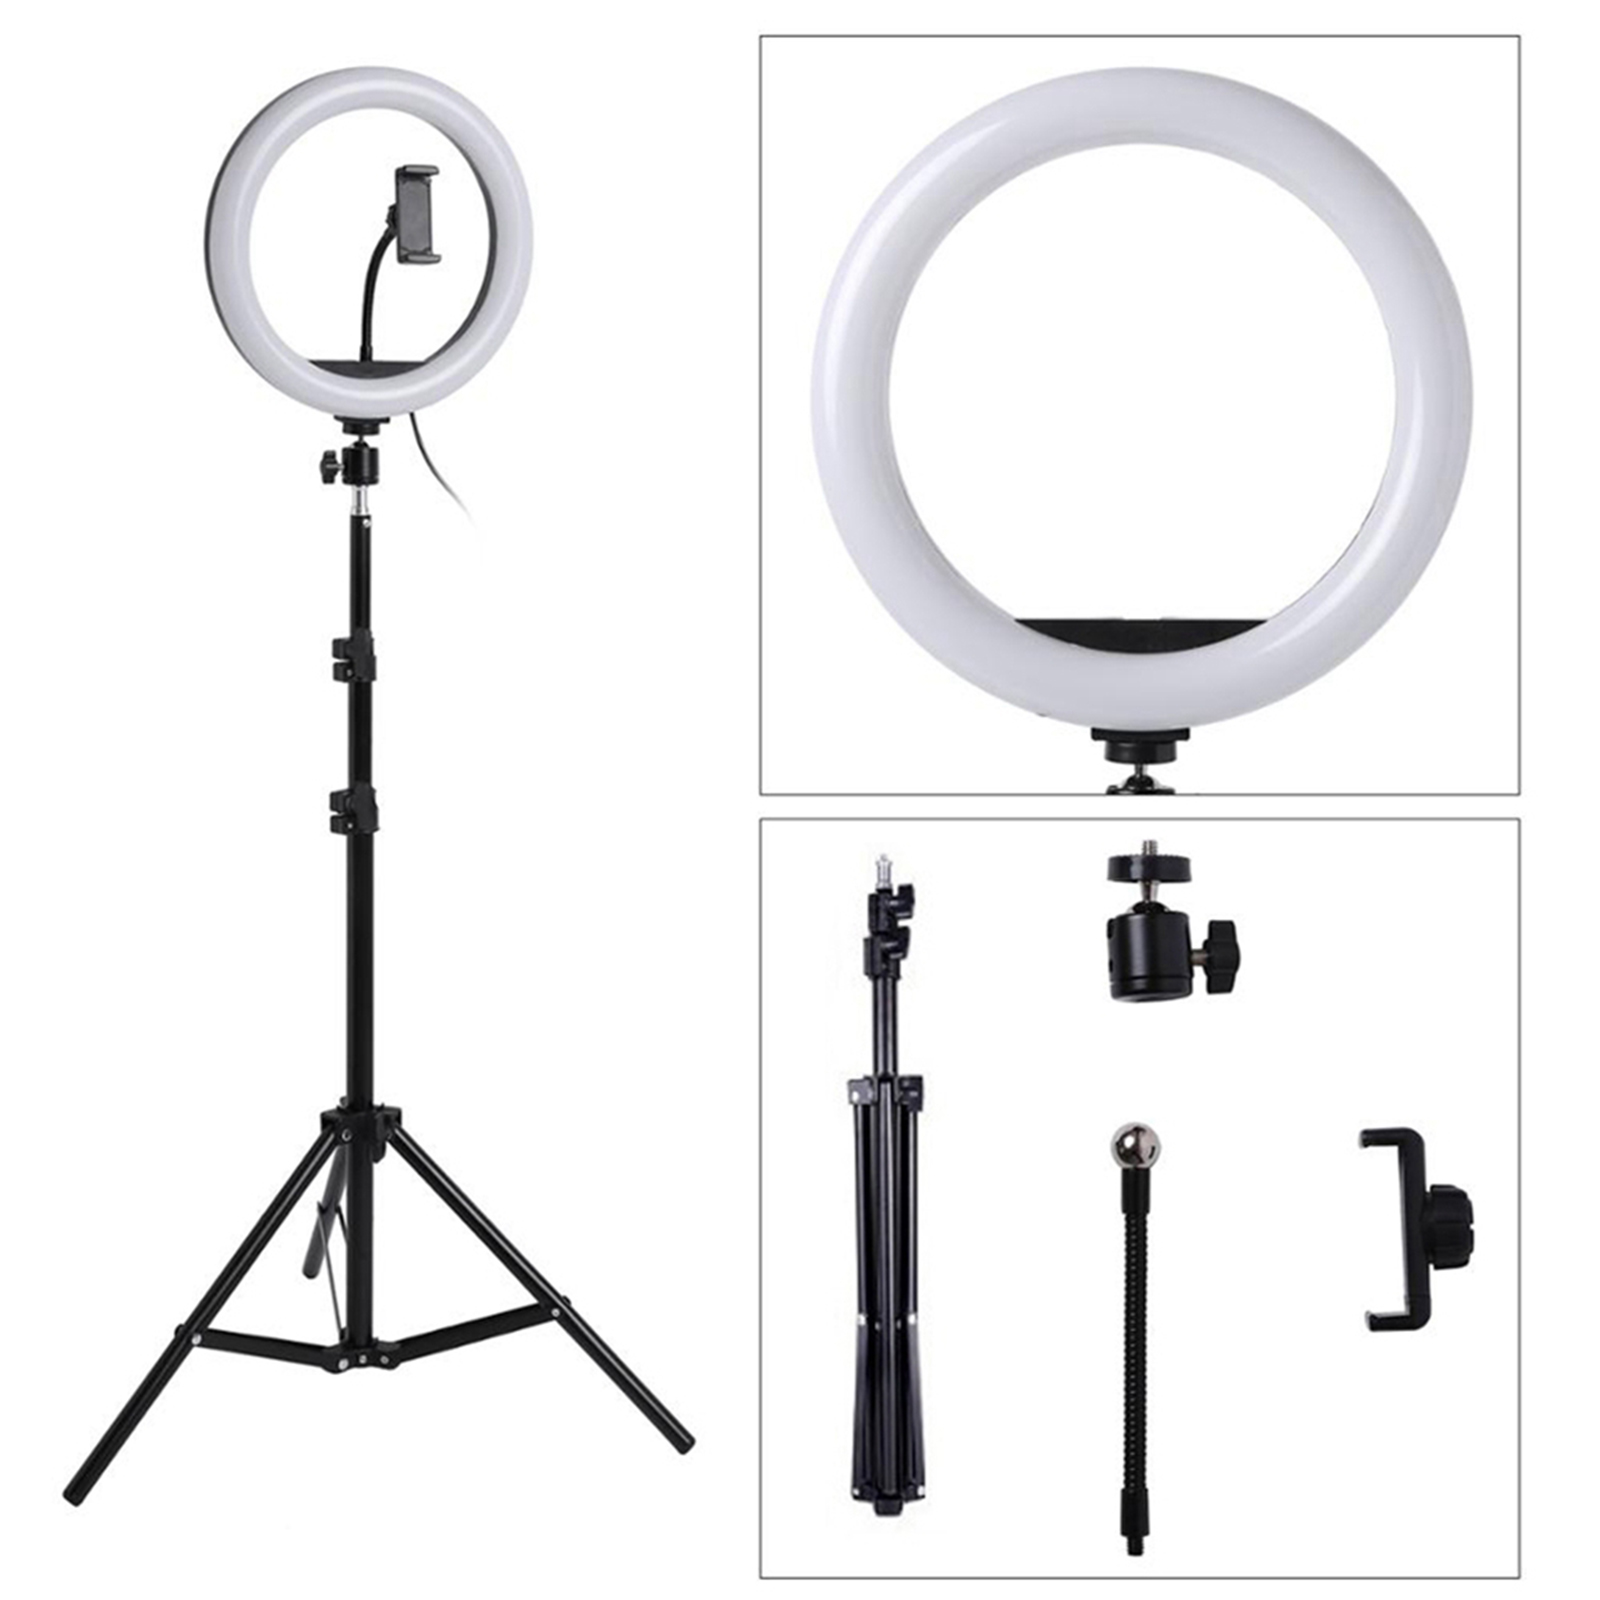 LED Ring Light Lamp Tripod Round Selfie Ring Light with Tripod for Mobile Phone Living Equipment Photography Lamp Hoop Ringlight